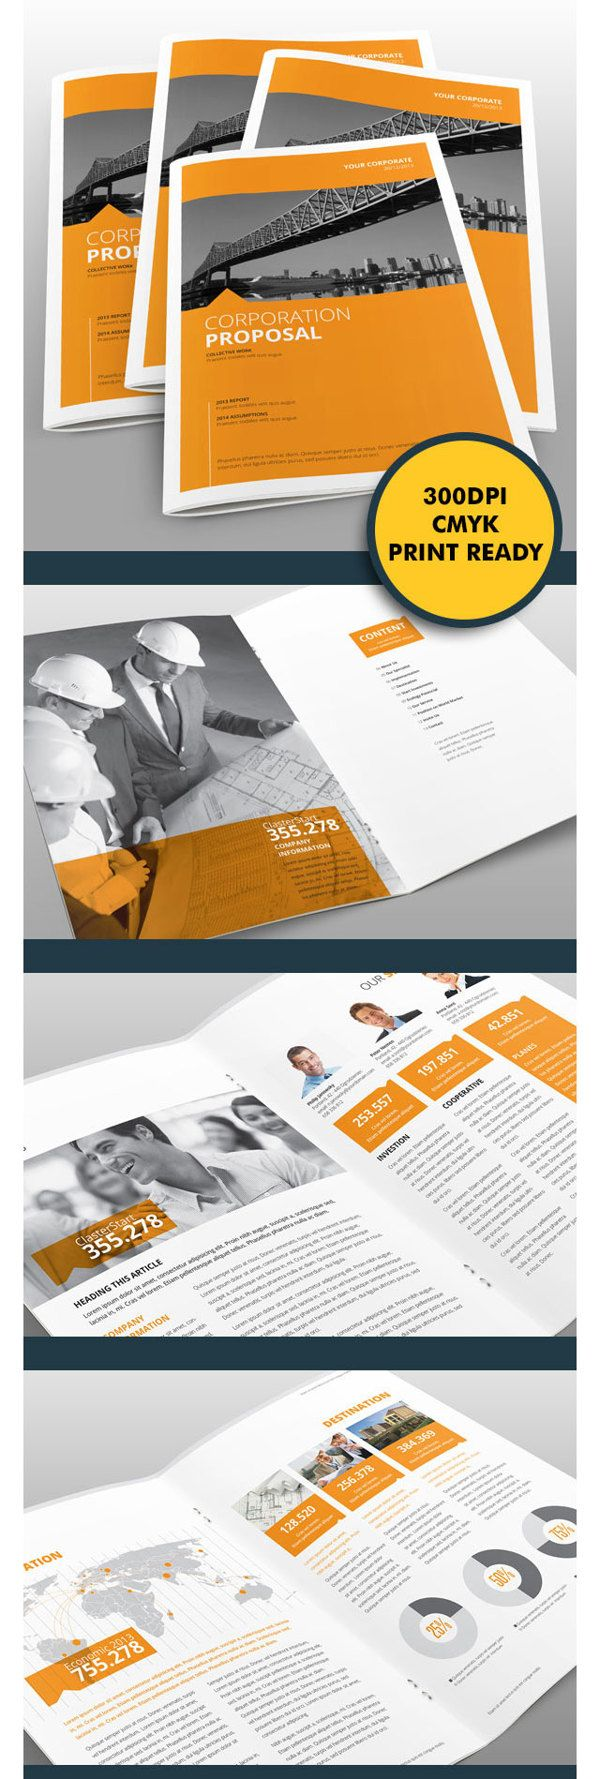 The 11 best project proposal images on pinterest proposal sharp and clean business proposal by braxas mora via behance accmission